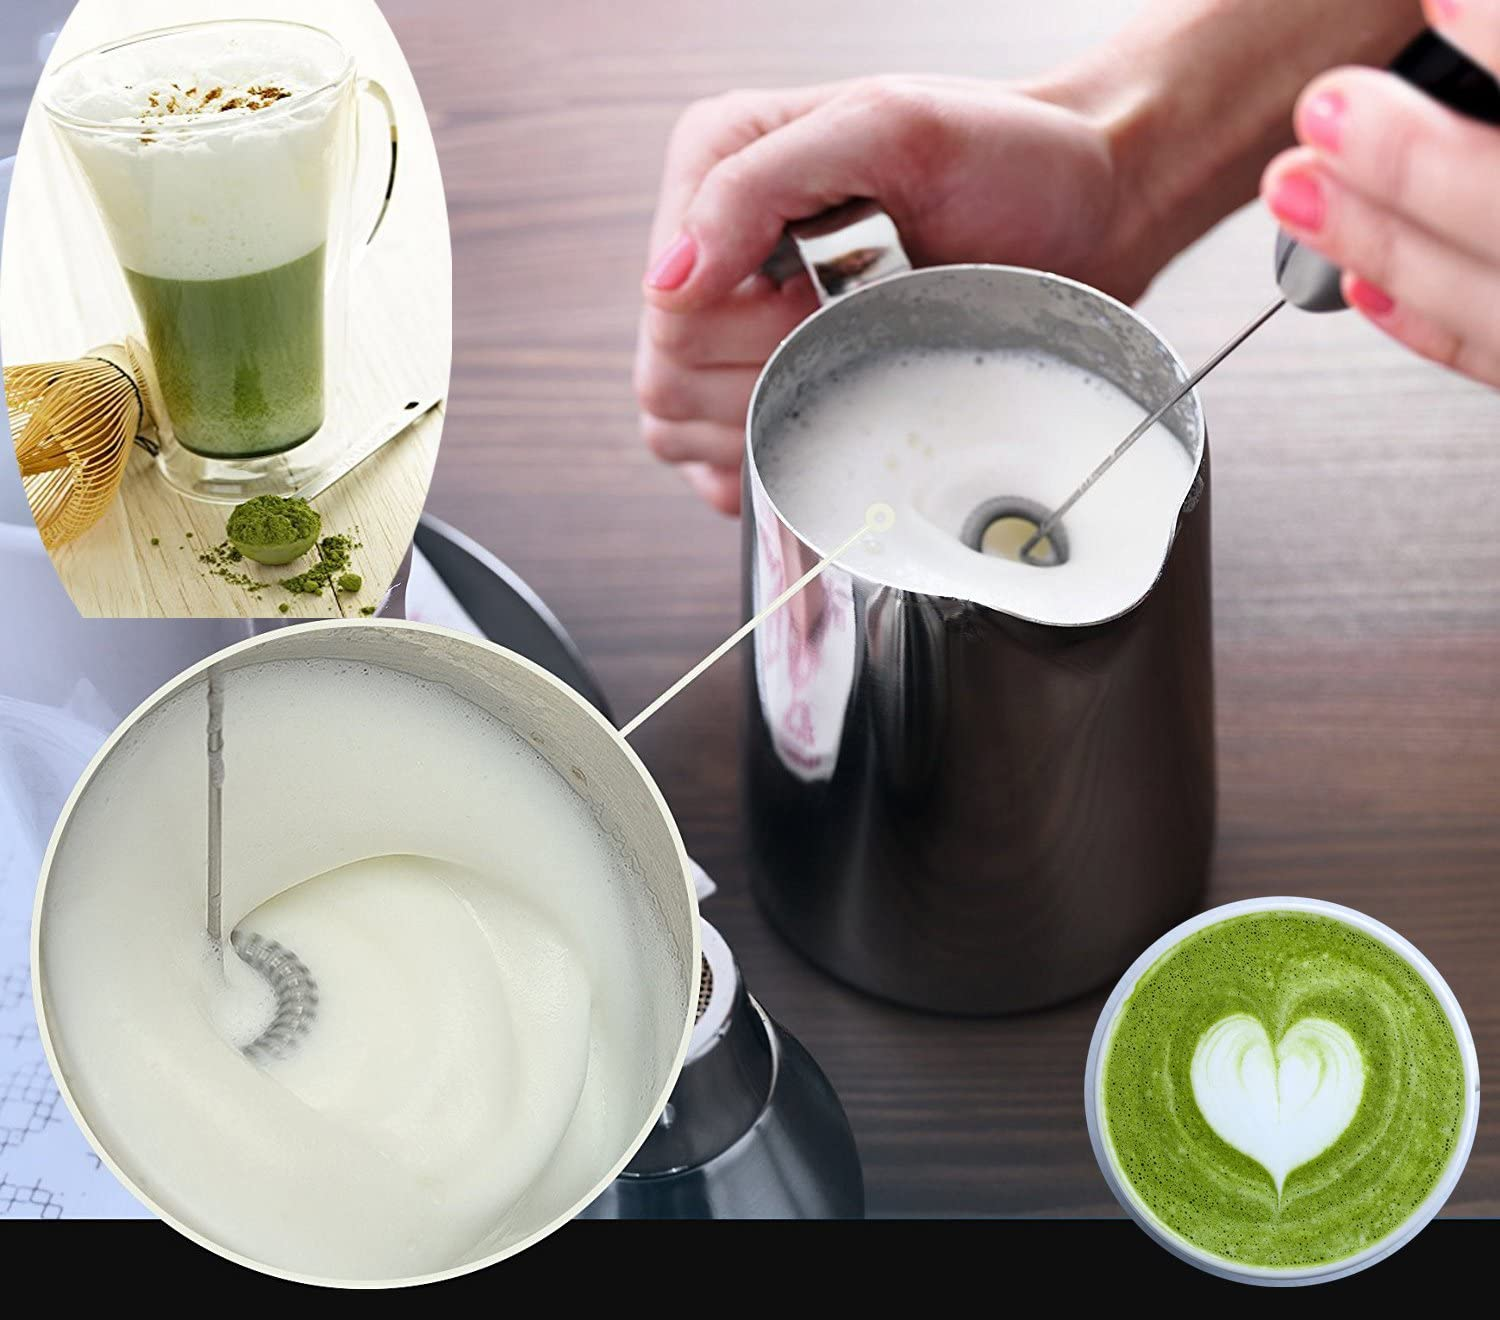 Durable Drink Mixer with 2X Stainless Steel Whisk Latte Cappuccino Hot Chocolate Milk Frother Handheld Battery Operated Electric Foam Maker for Coffee